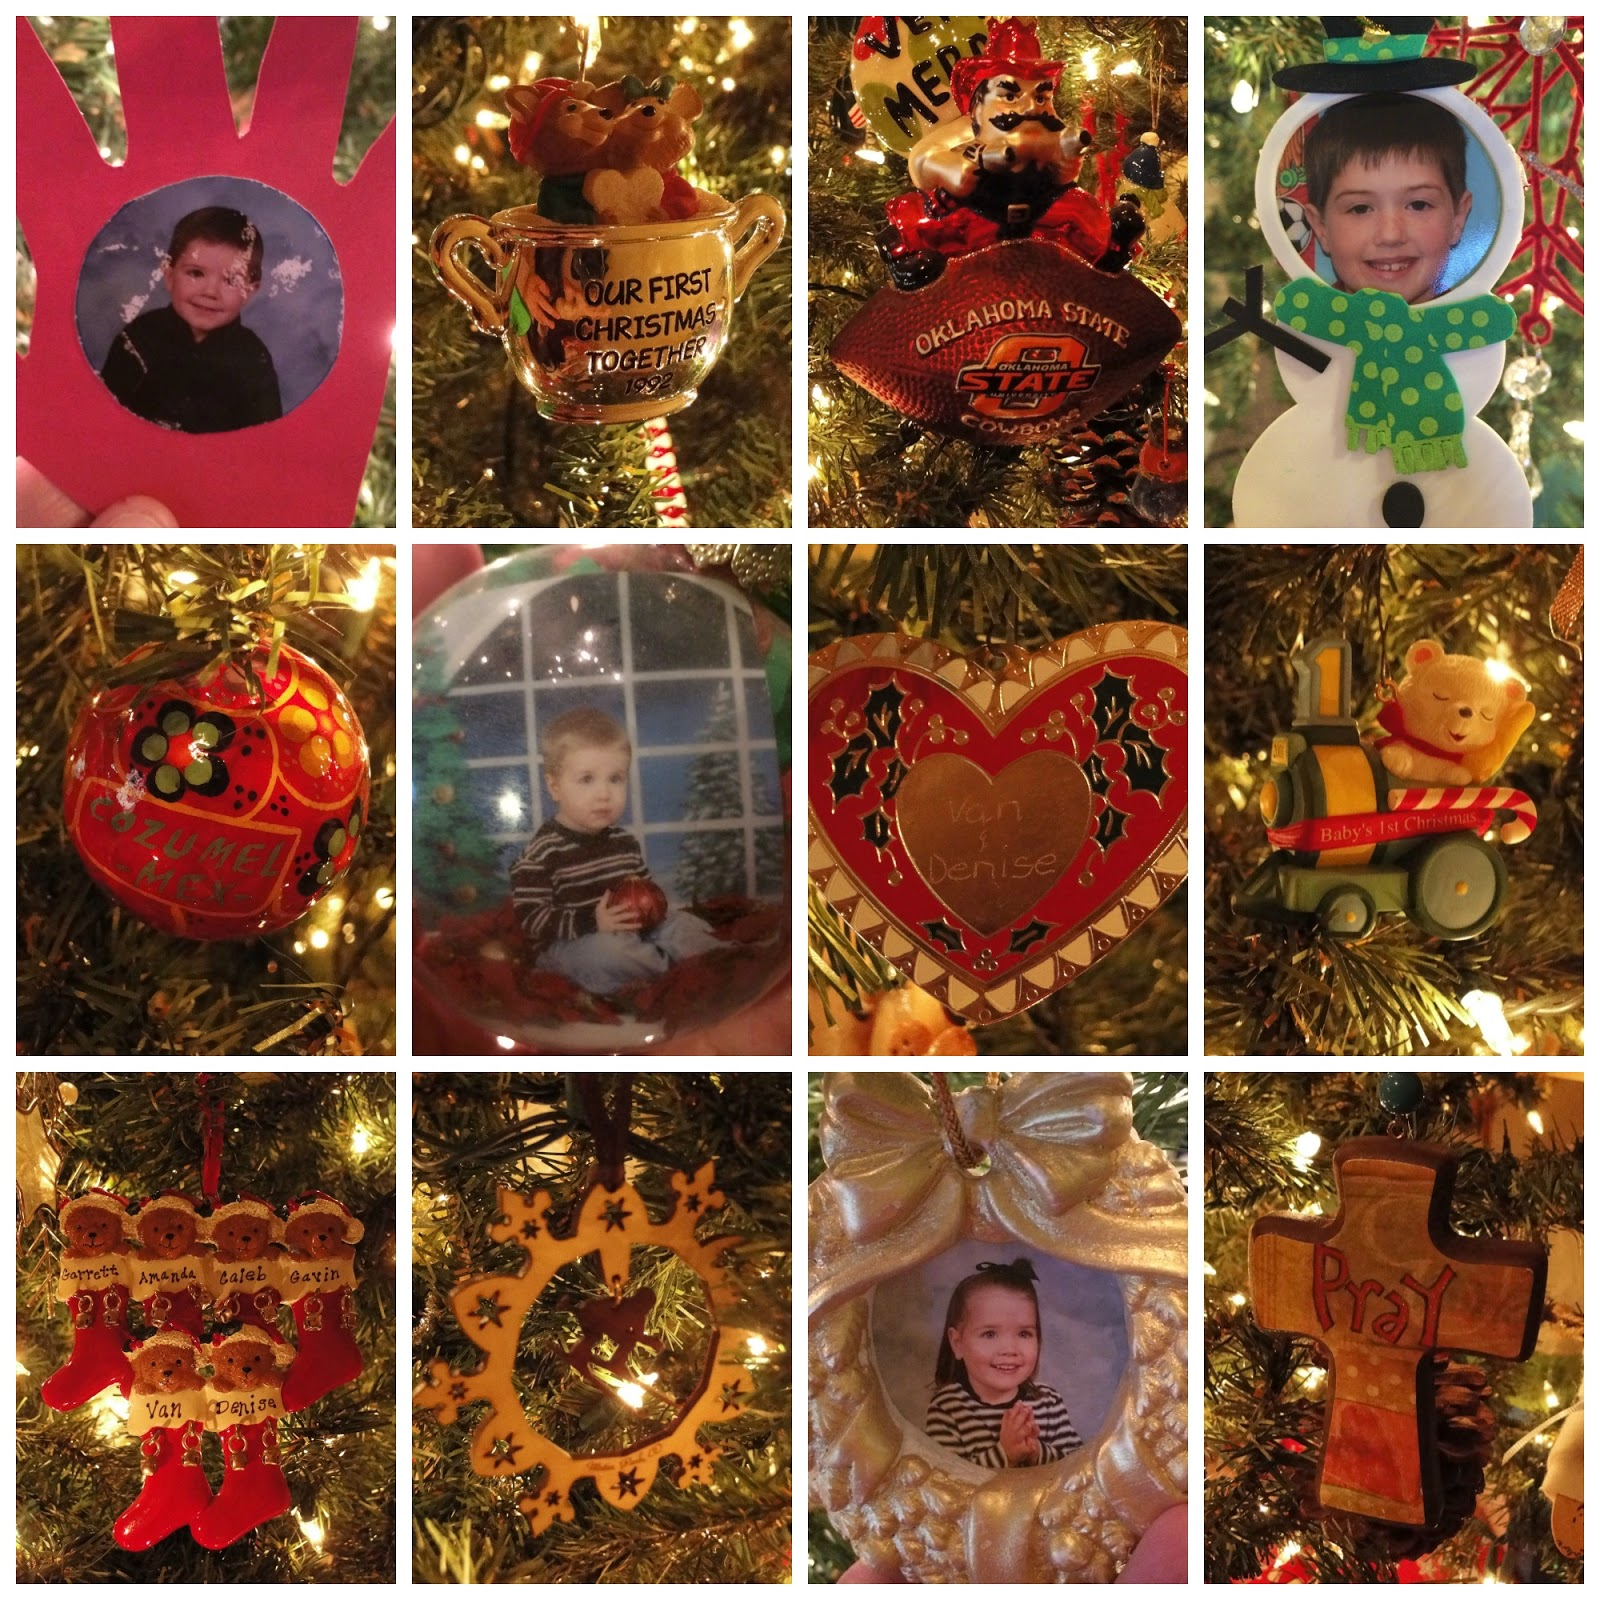 Marriage ornaments - The Ornament On The Bottom Right Is A New Addition This Year Given To Me By One Of My Dearest Friends And Prayer Partners There Are Four Of Us